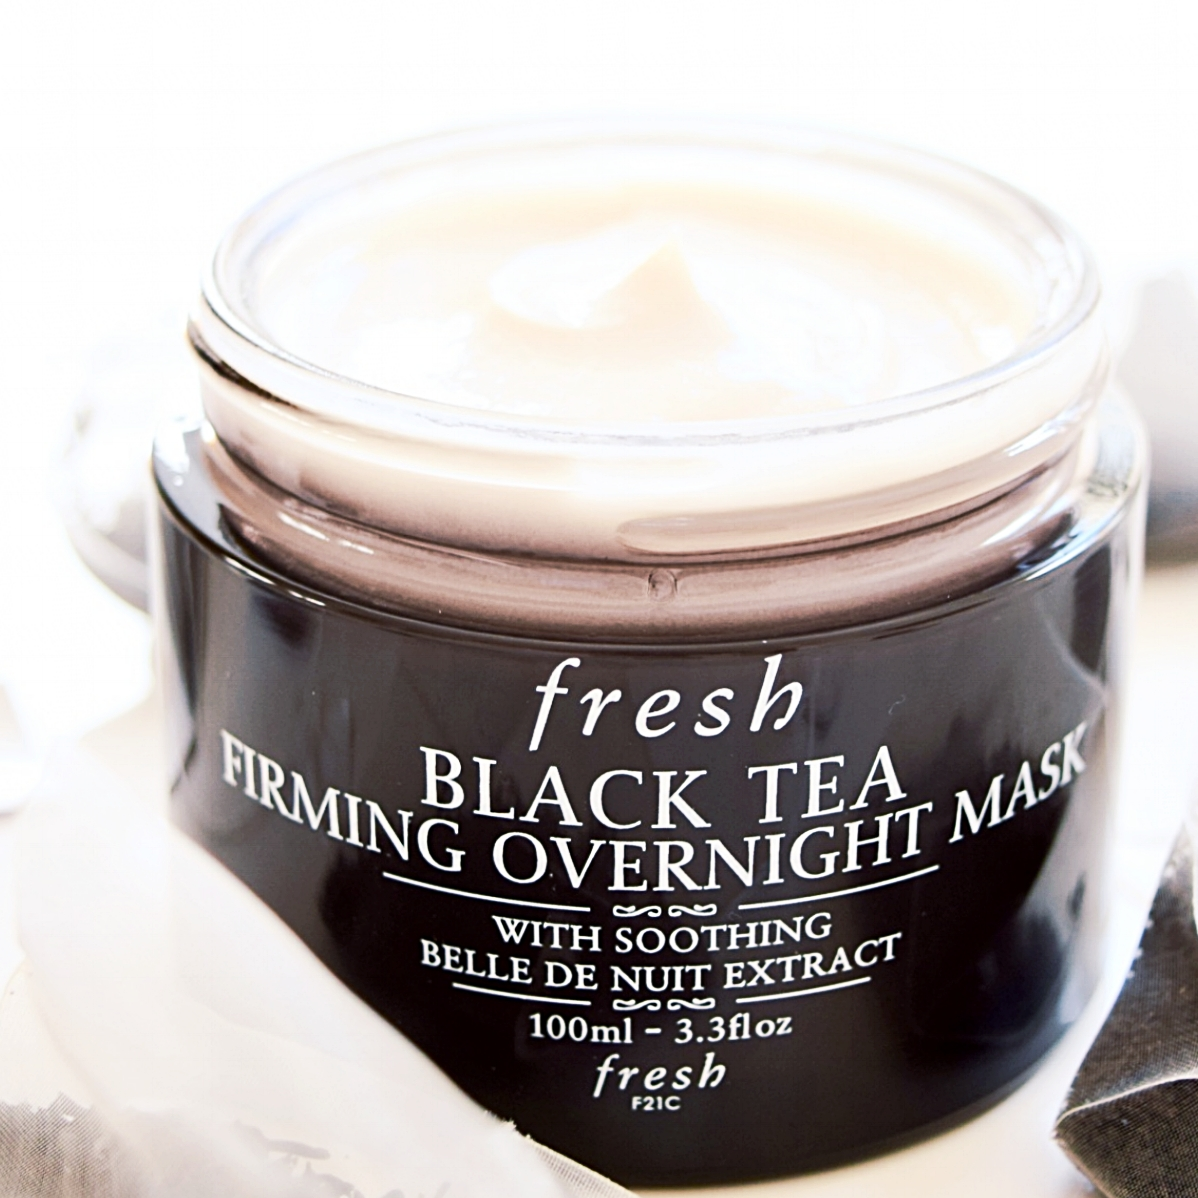 Fresh-Black-Tea-Overnight-Mask.jpg